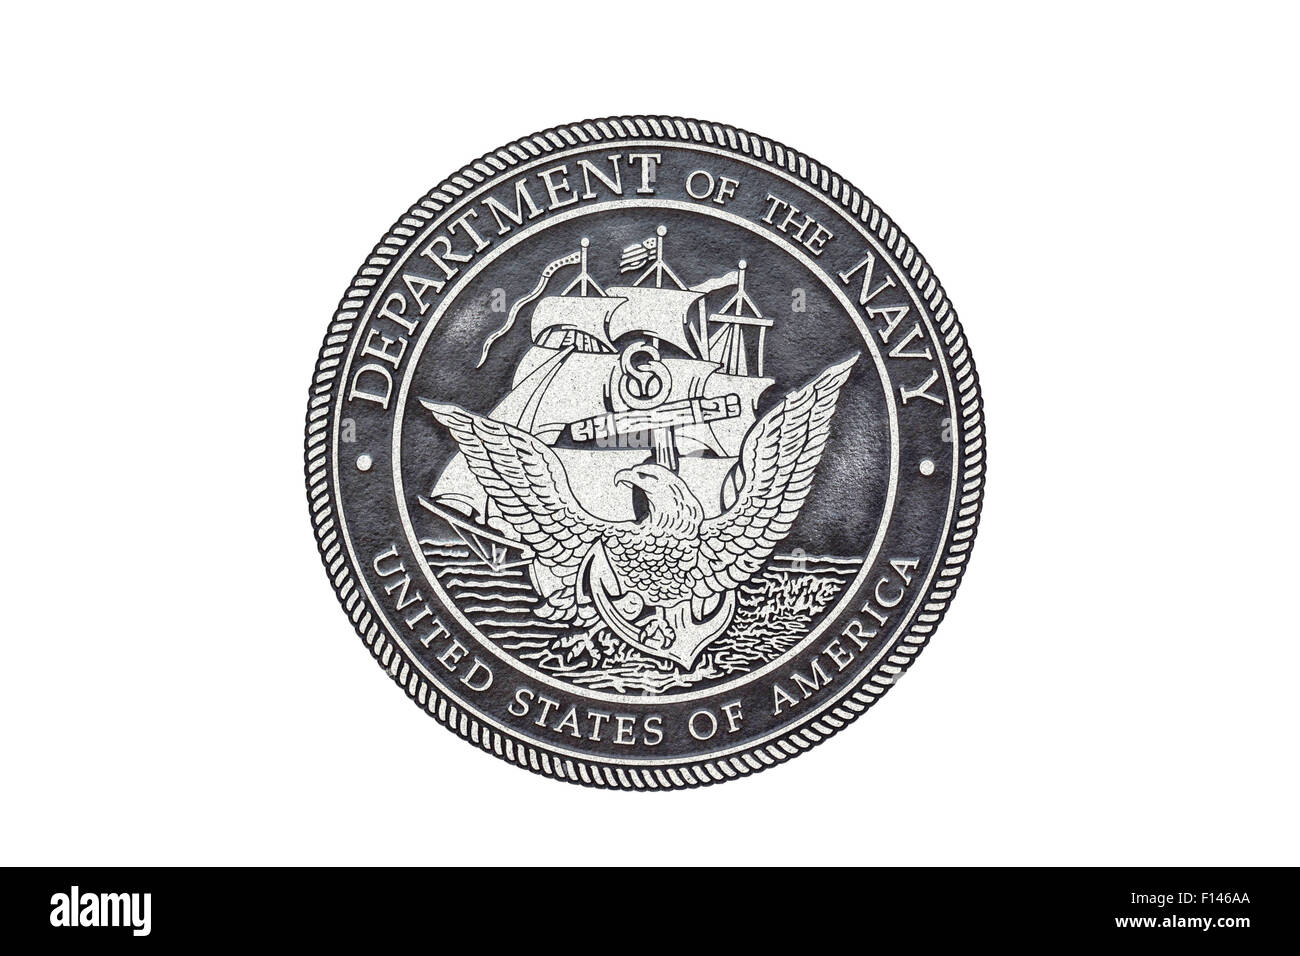 U.S. Navy  official seal on a white background. - Stock Image